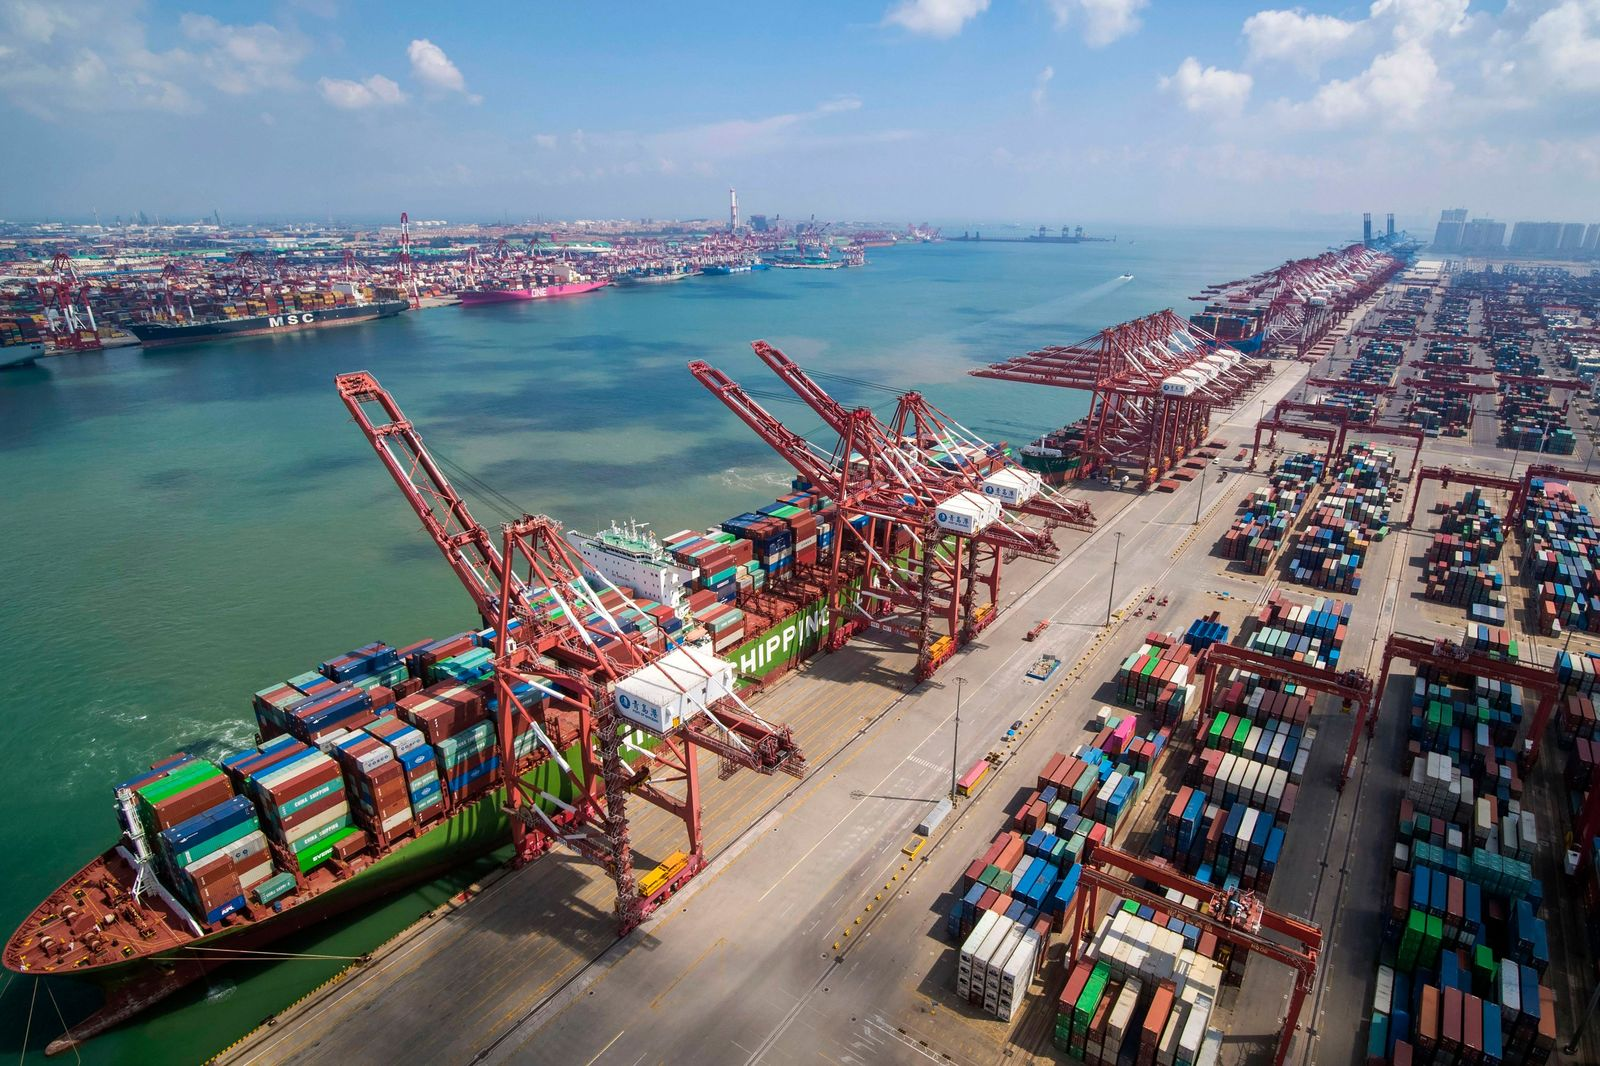 FILE - In this Aug. 6, 2019, photo, a container ship is docked a port in Qingdao in eastern China's Shandong province. U.S. President Donald Trump angrily escalated his trade fight with China on Friday, Aug. 23, 2019. (Chinatopix via AP)